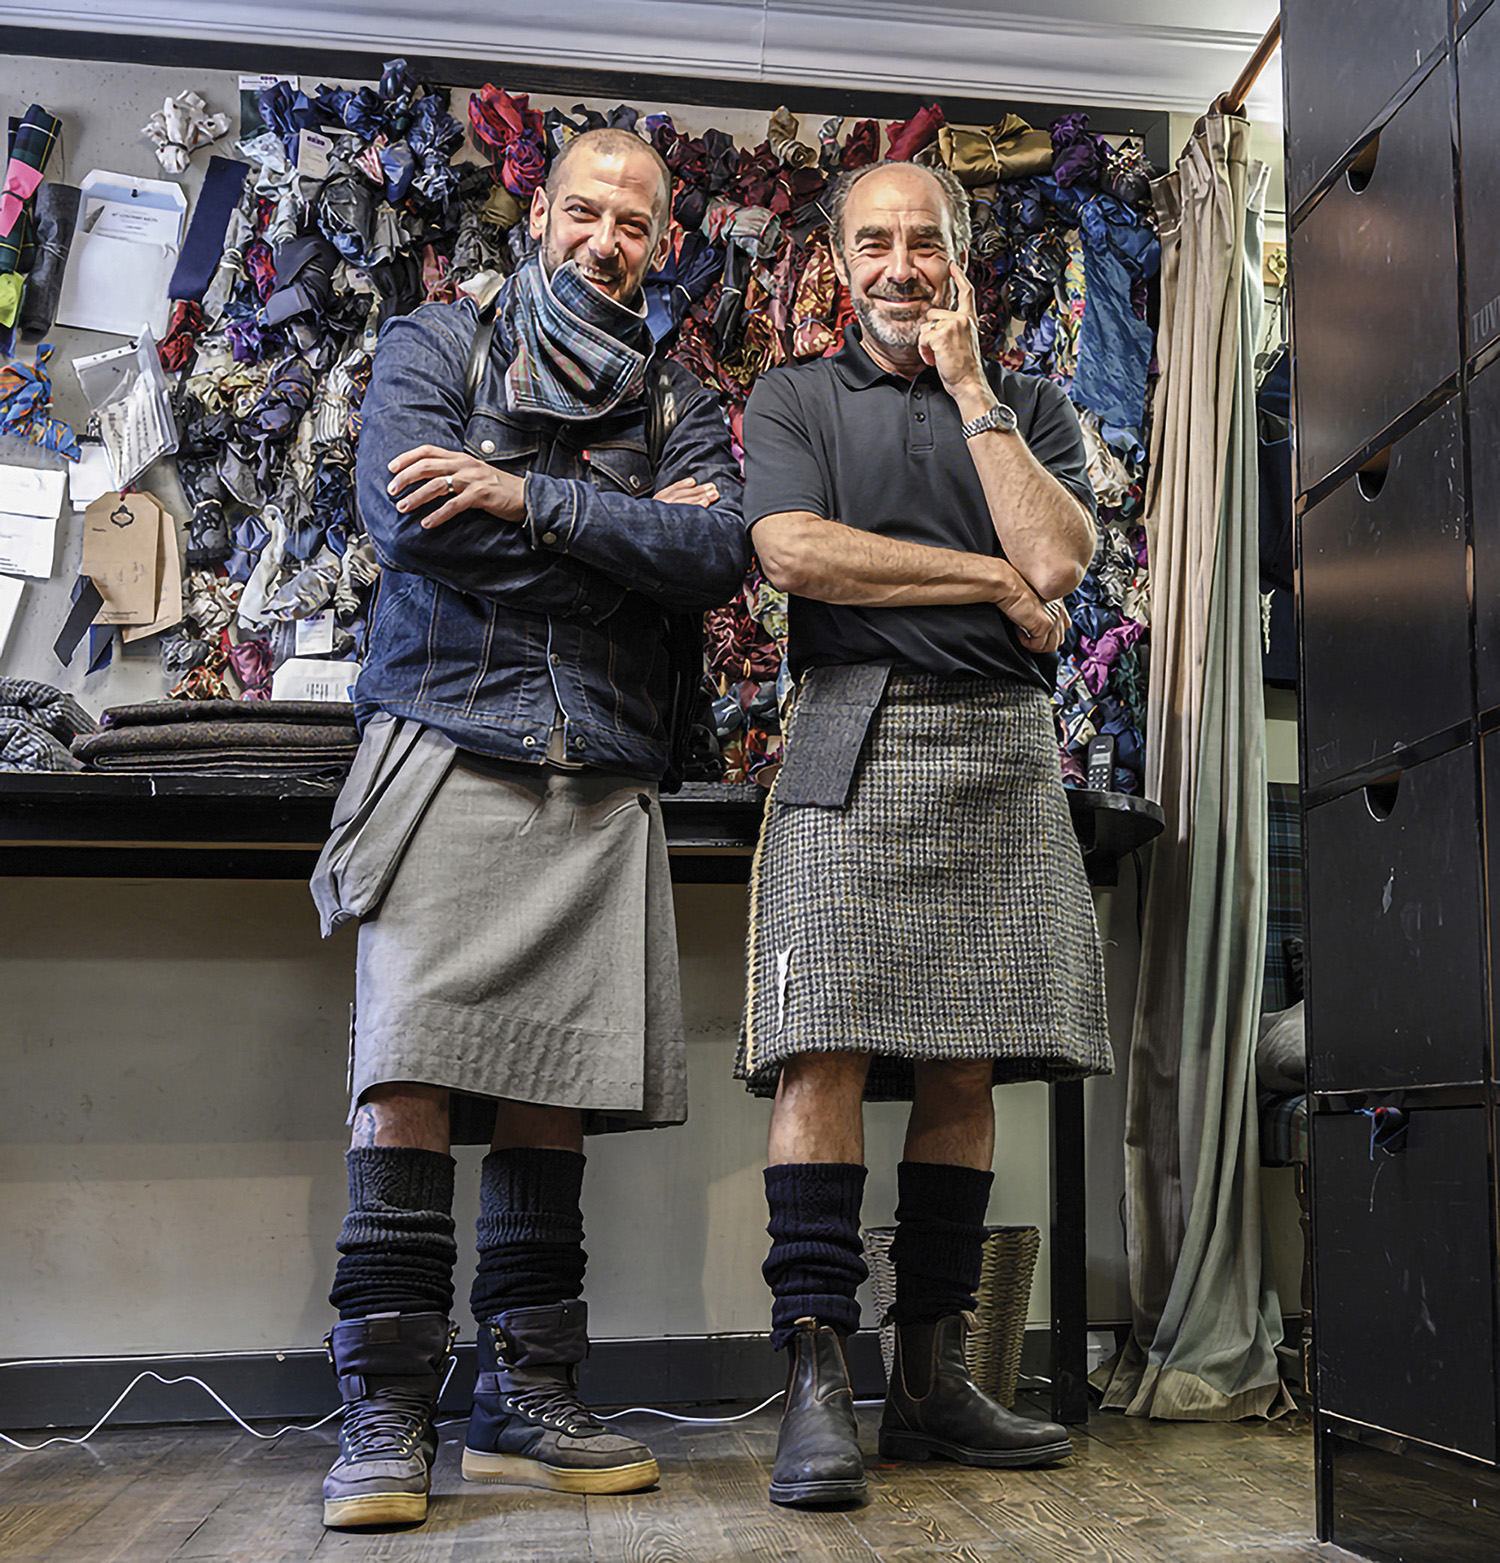 Kevin Spreekmeester and Howie Nicholsky in kilts